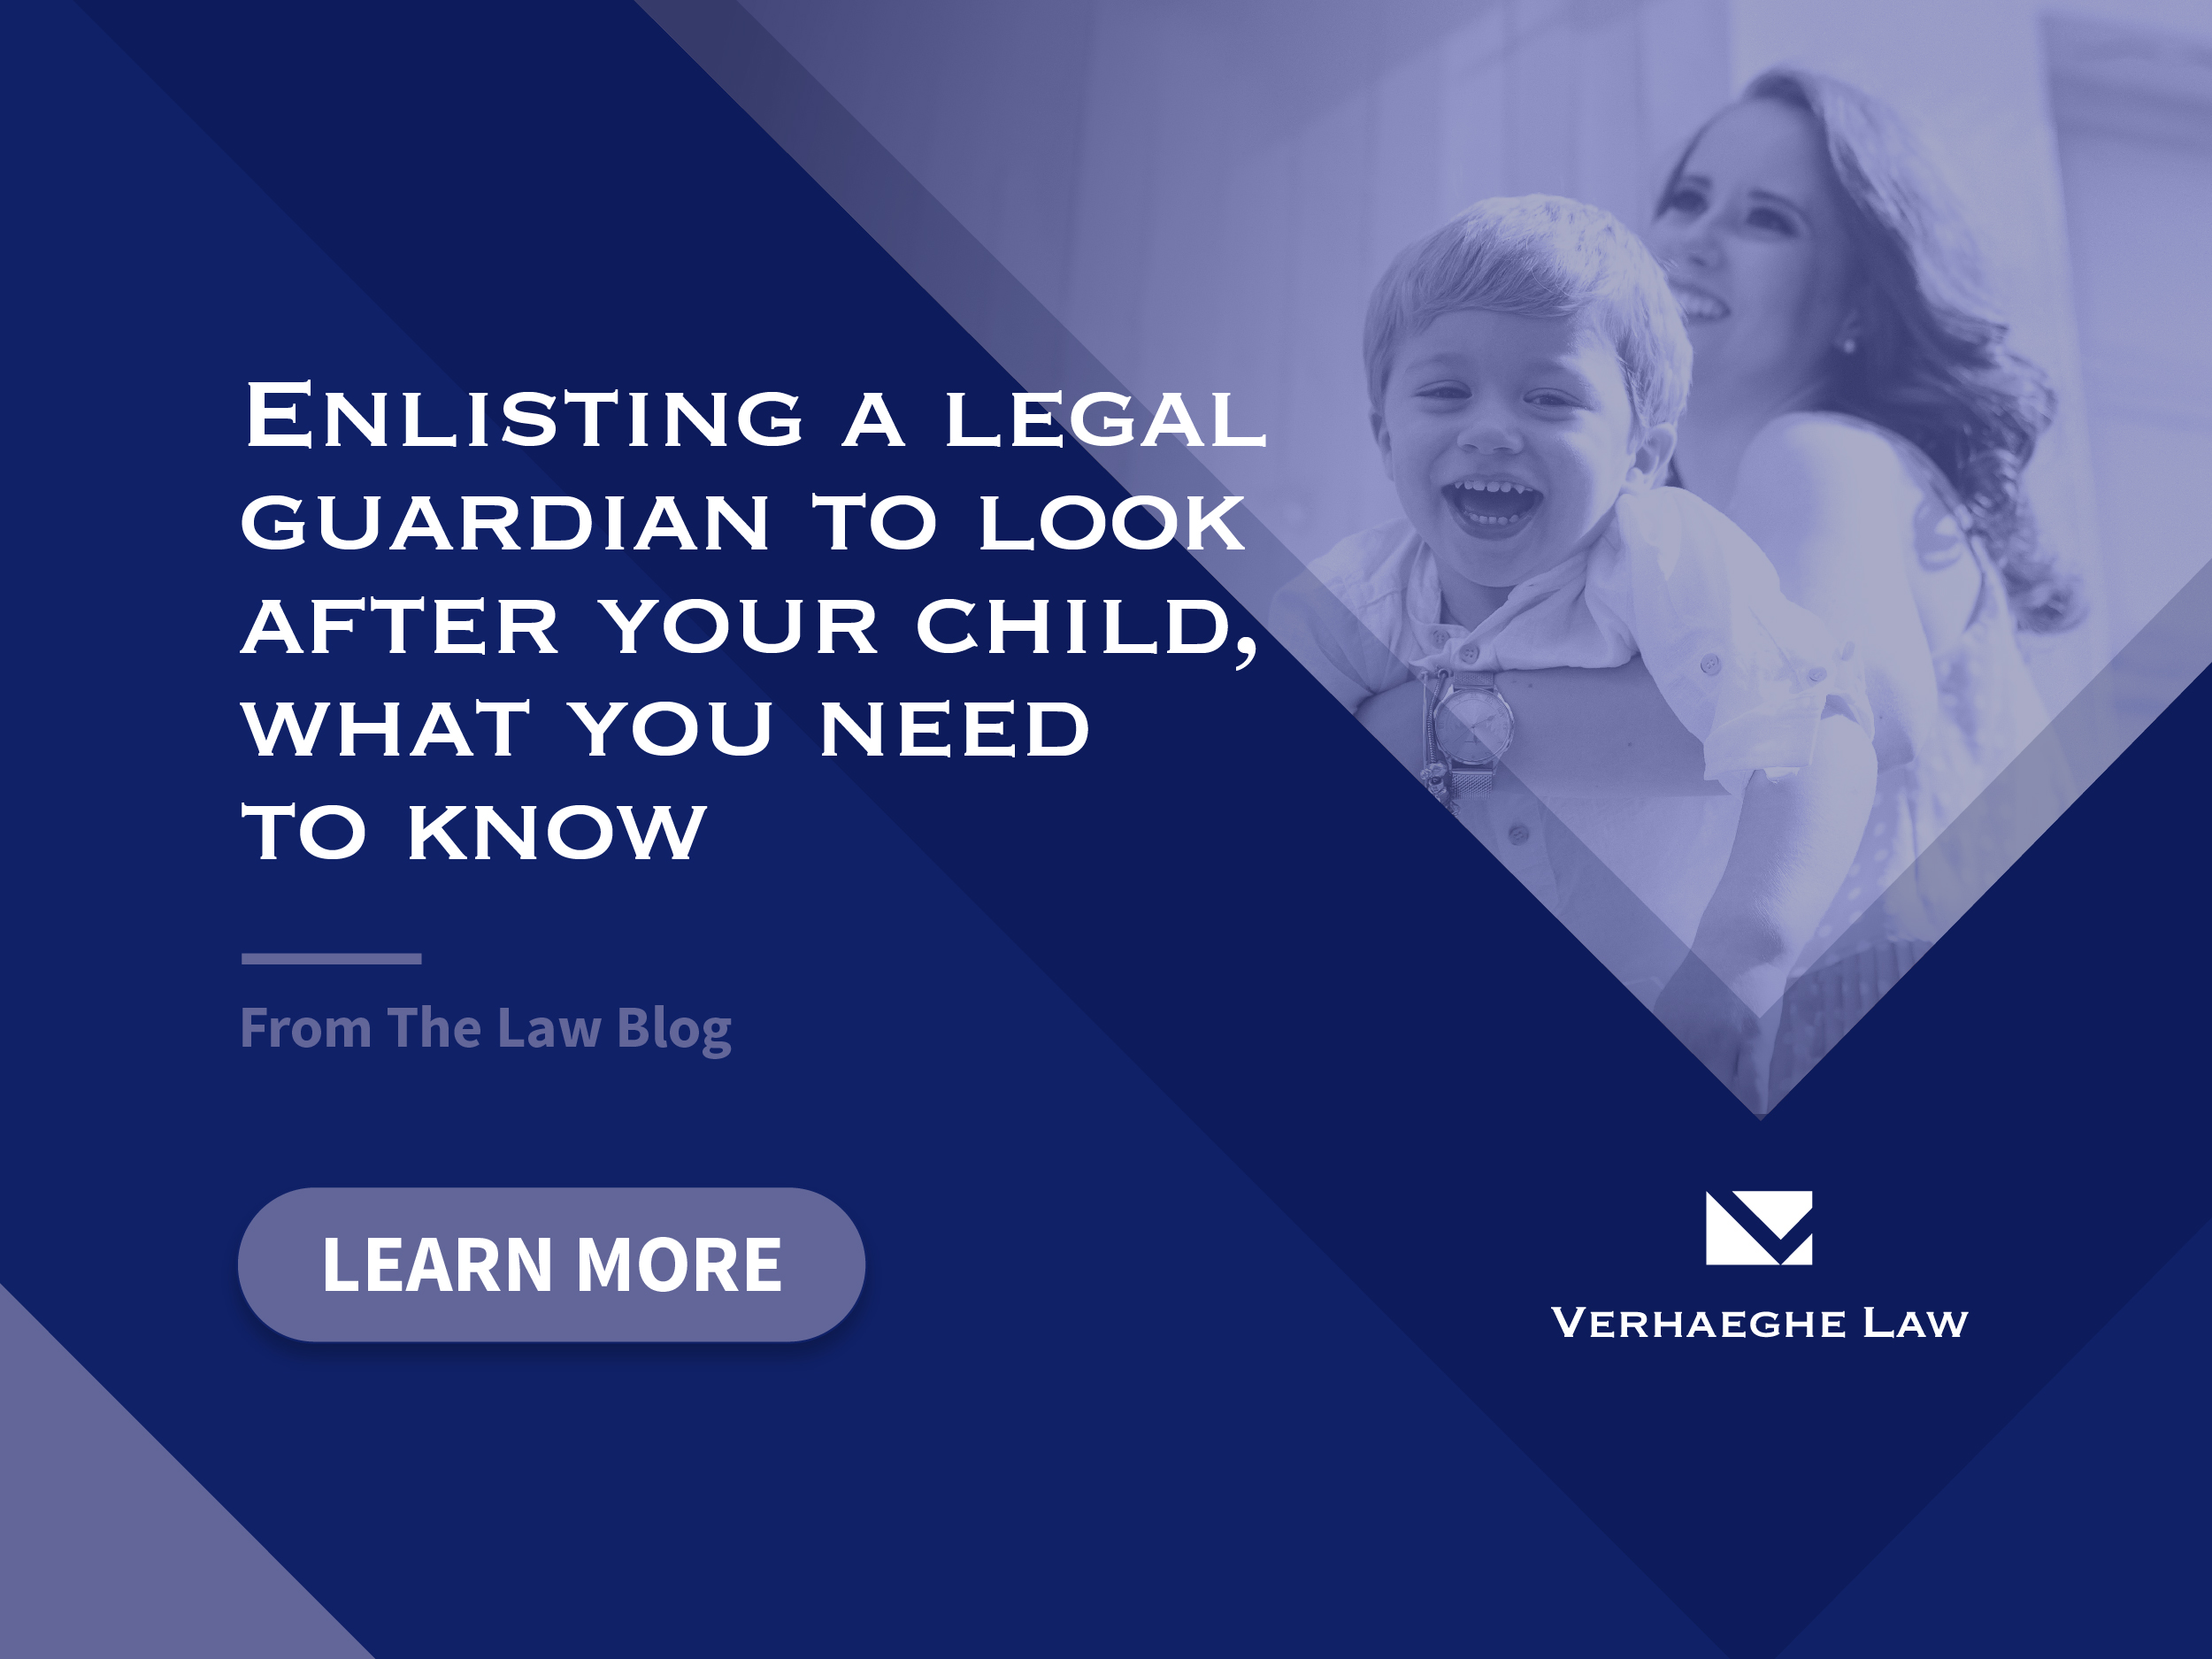 Enlisting a legal guardian to look after your child: what you need to know